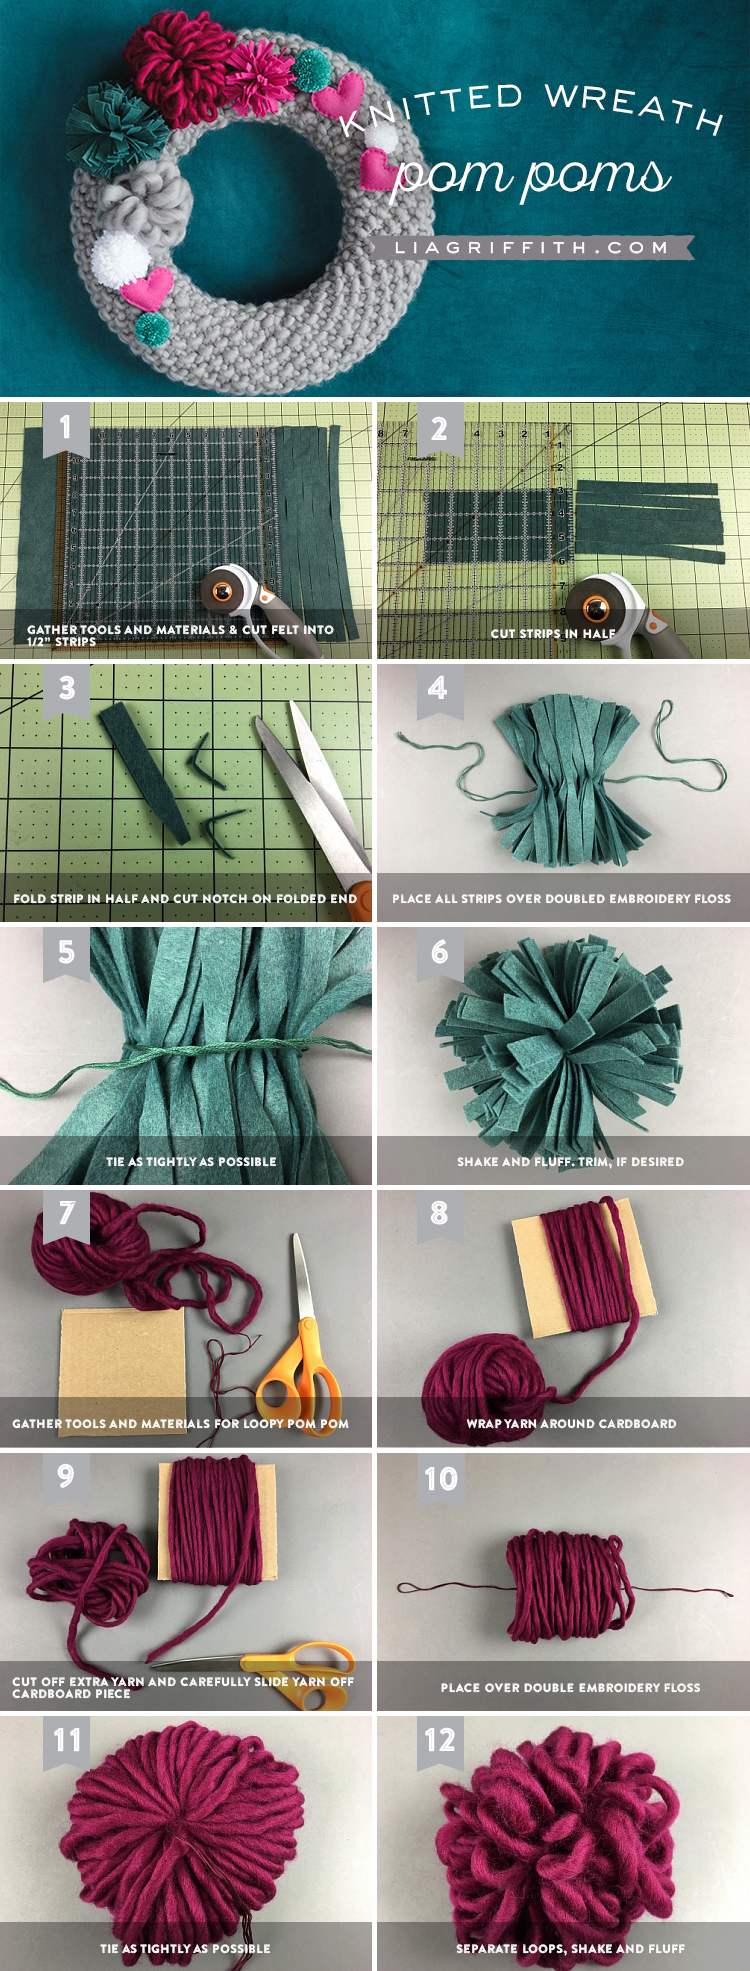 DIY Knit Wreath Tutorial with Video